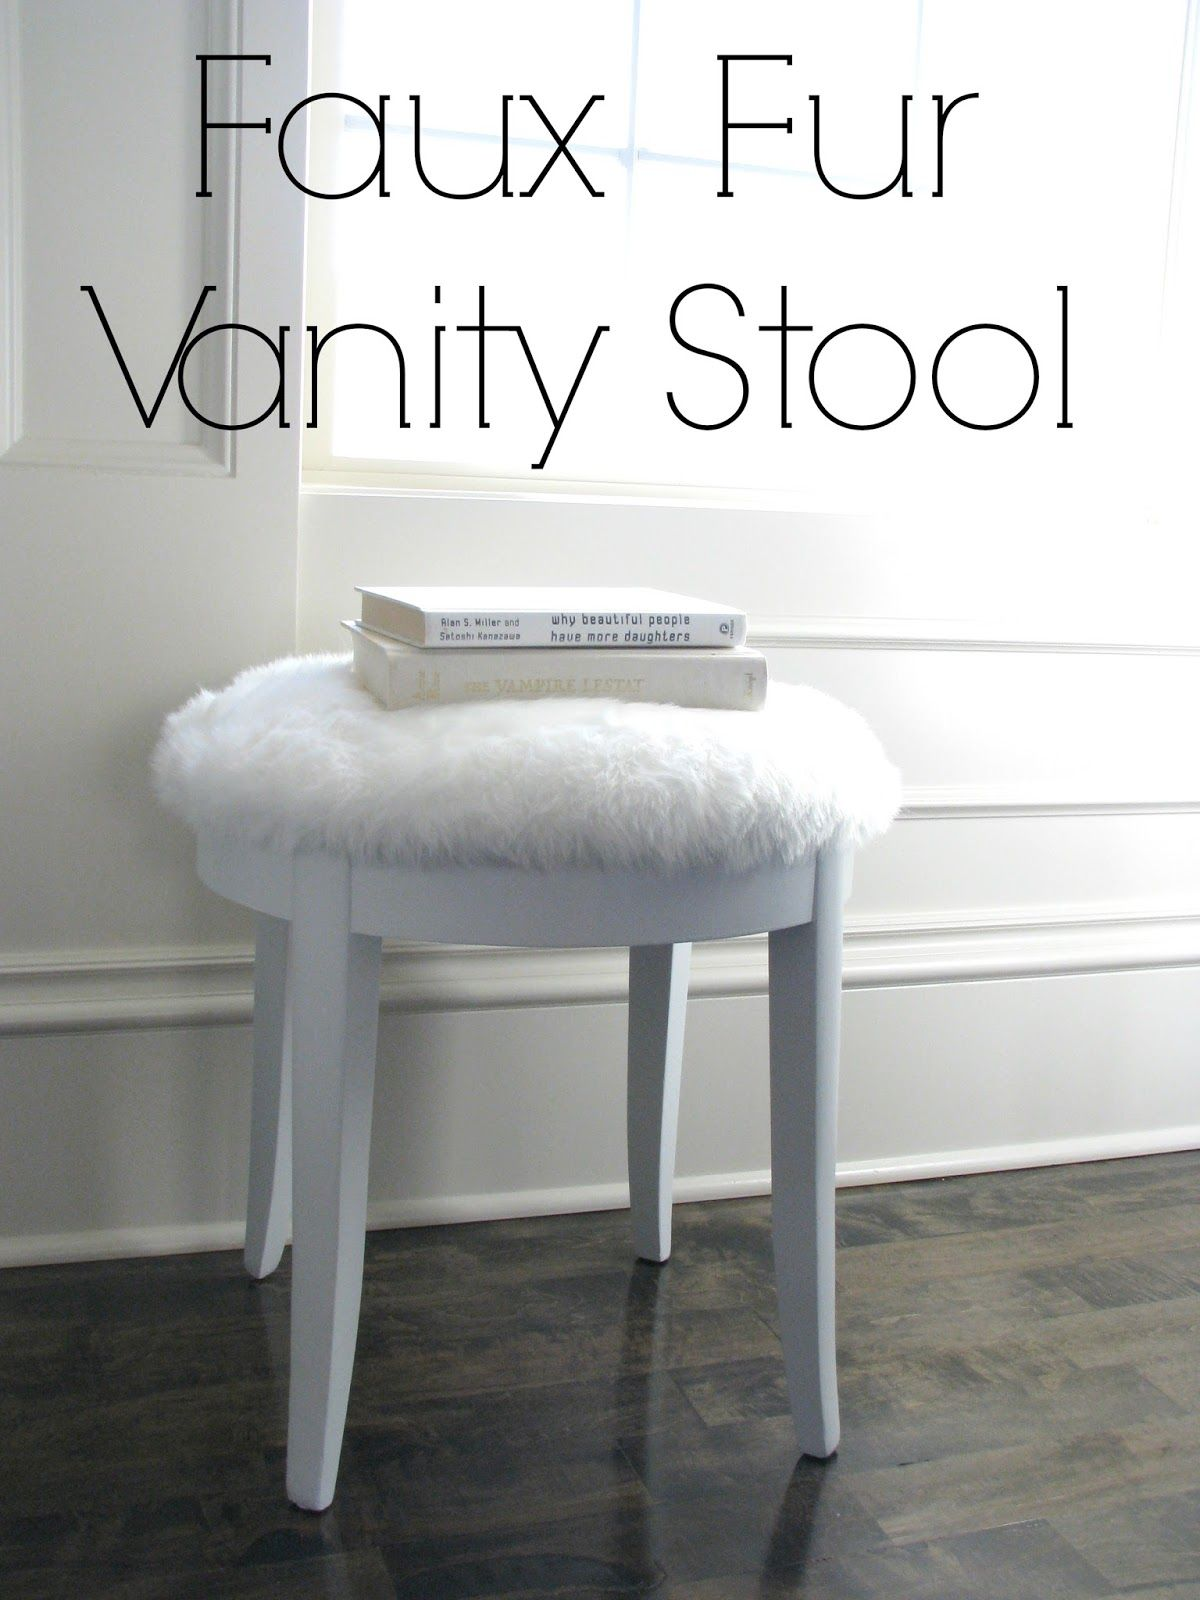 Diy vanity stool Pink Fluffy Lifelovelarson Look For Less Challenge Faux Fur Vanity Stool Pinterest Lifelovelarson Look For Less Challenge Faux Fur Vanity Stool